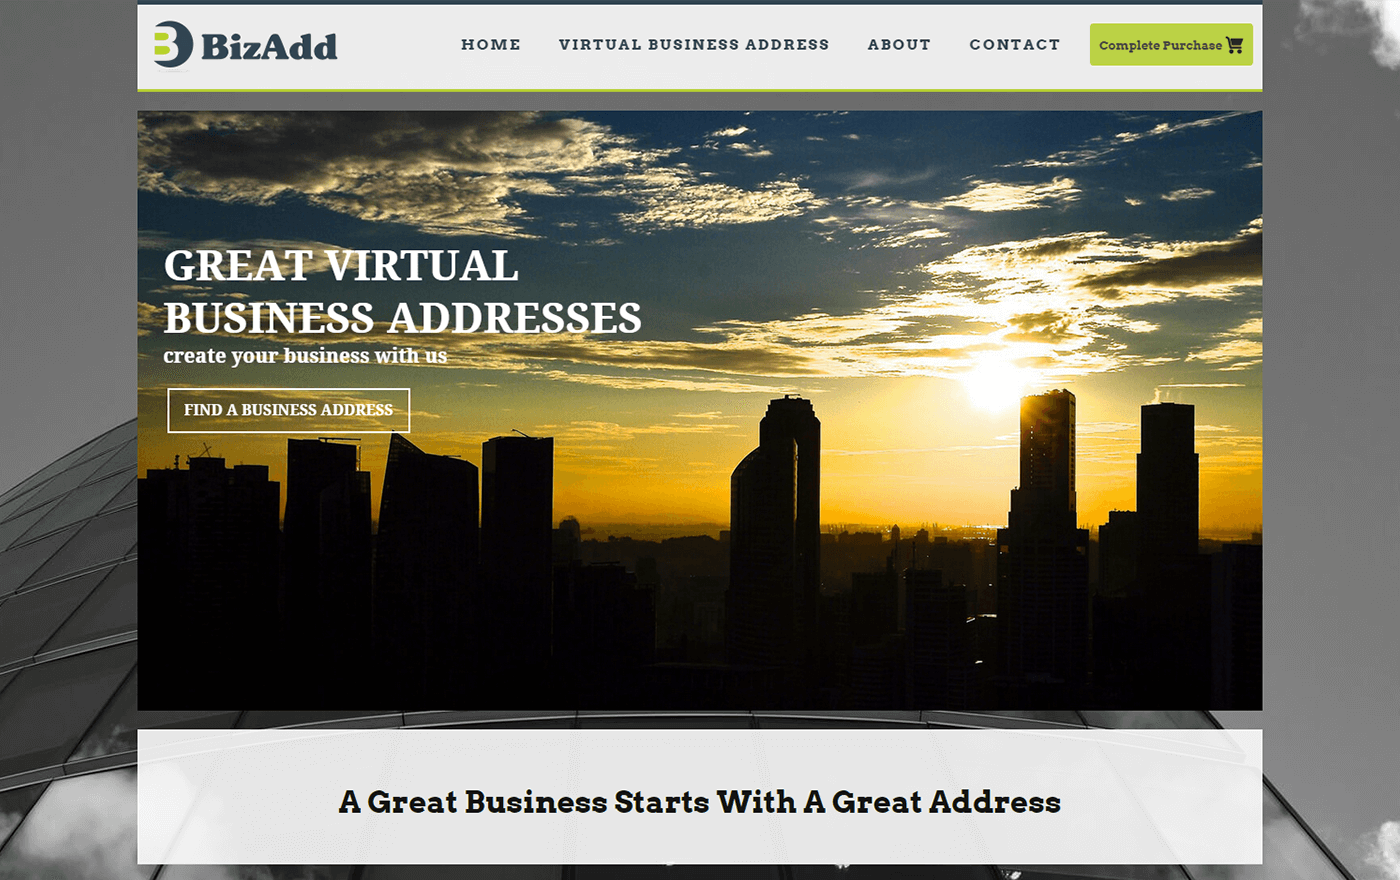 Bizadd Website